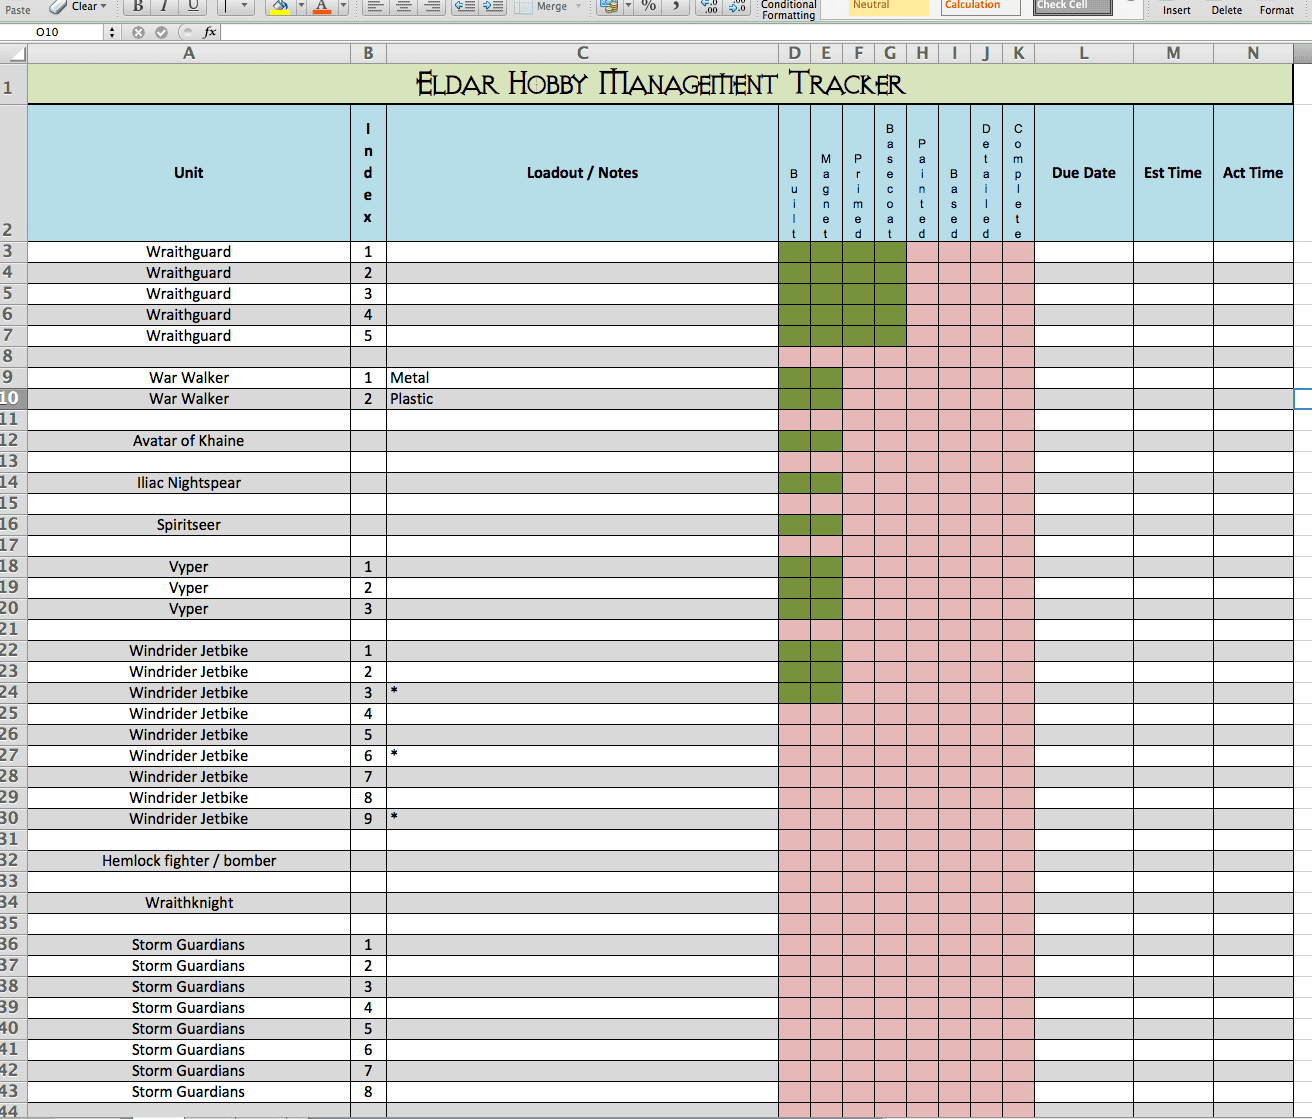 Tracking Spreadsheet Template Excel SalesTracking Spreadsheet Template Spreadsheet Templates for Busines Spreadsheet Templates for Busines Free Sales Tracker Template